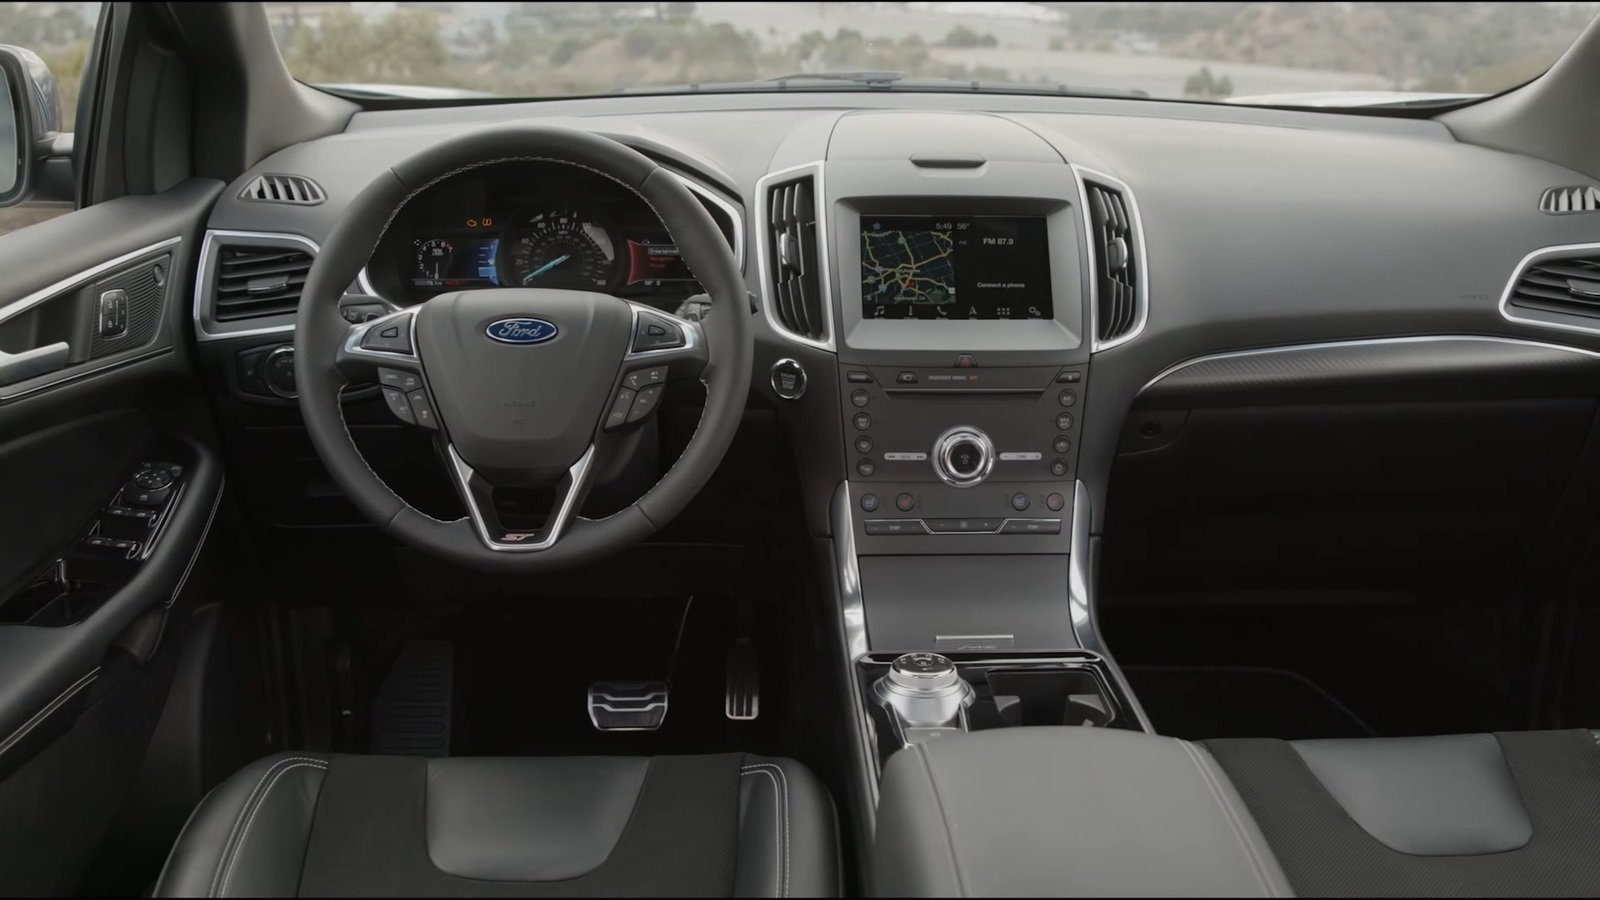 2019 Ford Edge Price Release Date Specs Interior Design Review